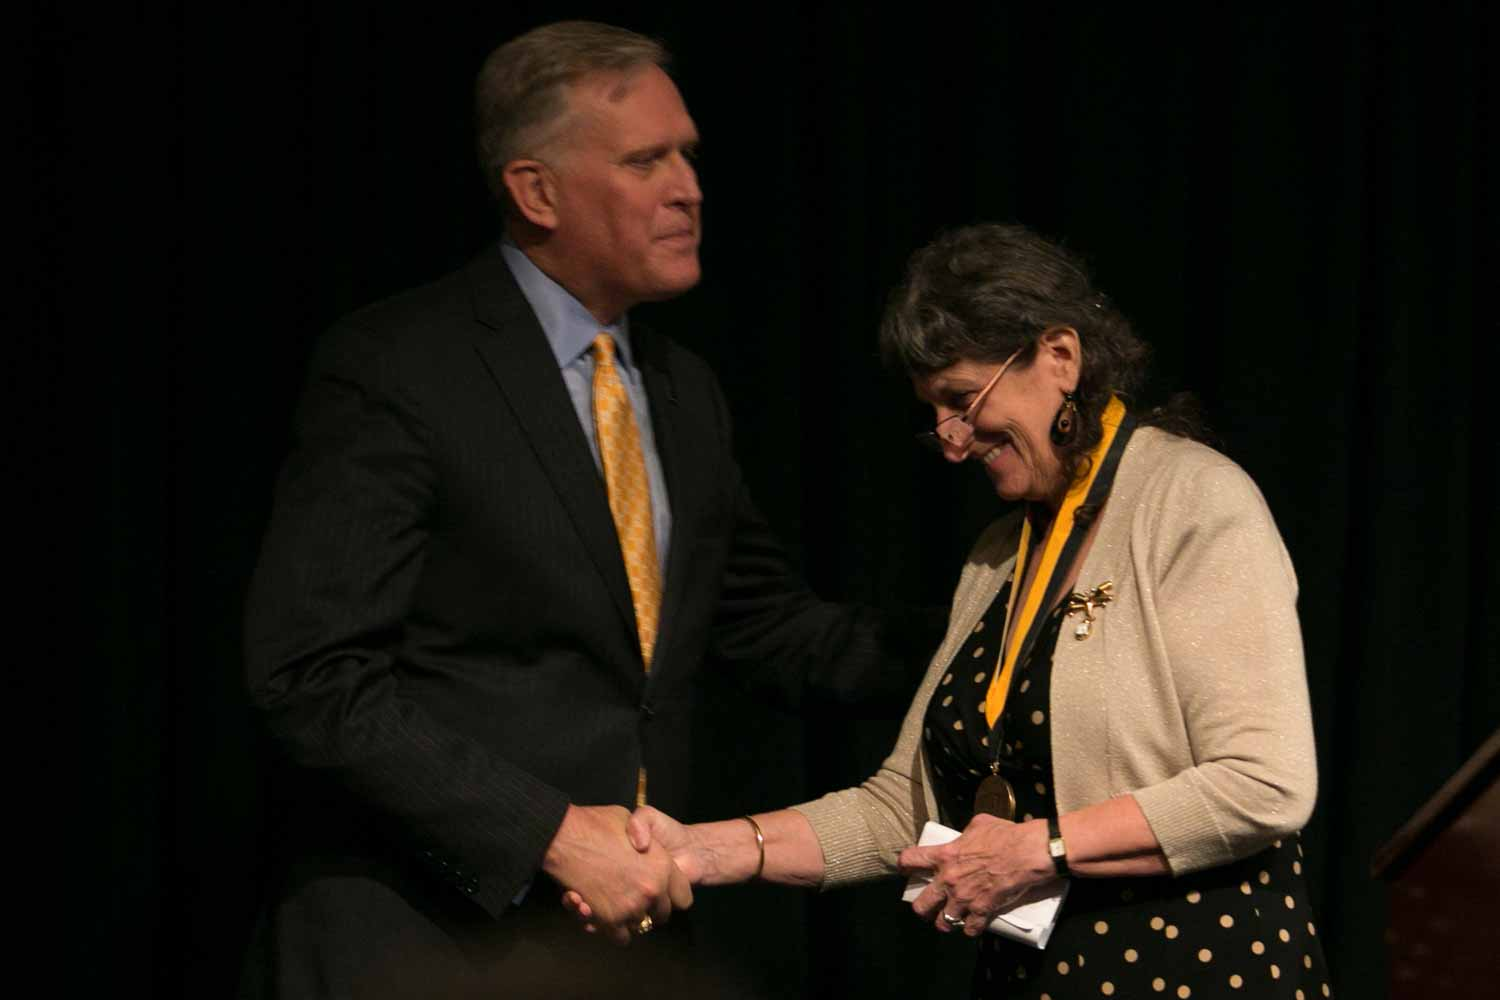 Merrill Perlman shakes Dean David Kurpius's hand after receiving her honor medal. In 1983, Perlman was hired as a Business copy editor at The New York Times, later becoming Metro copy desk chief (twice), night Metro editor, an editor on the Week in Review, recruiting editor for copy desks and managing editor of The New York Times News Service. In 2004, she was named director of copy desks, in charge of the 160-plus copy editors across the newsroom.